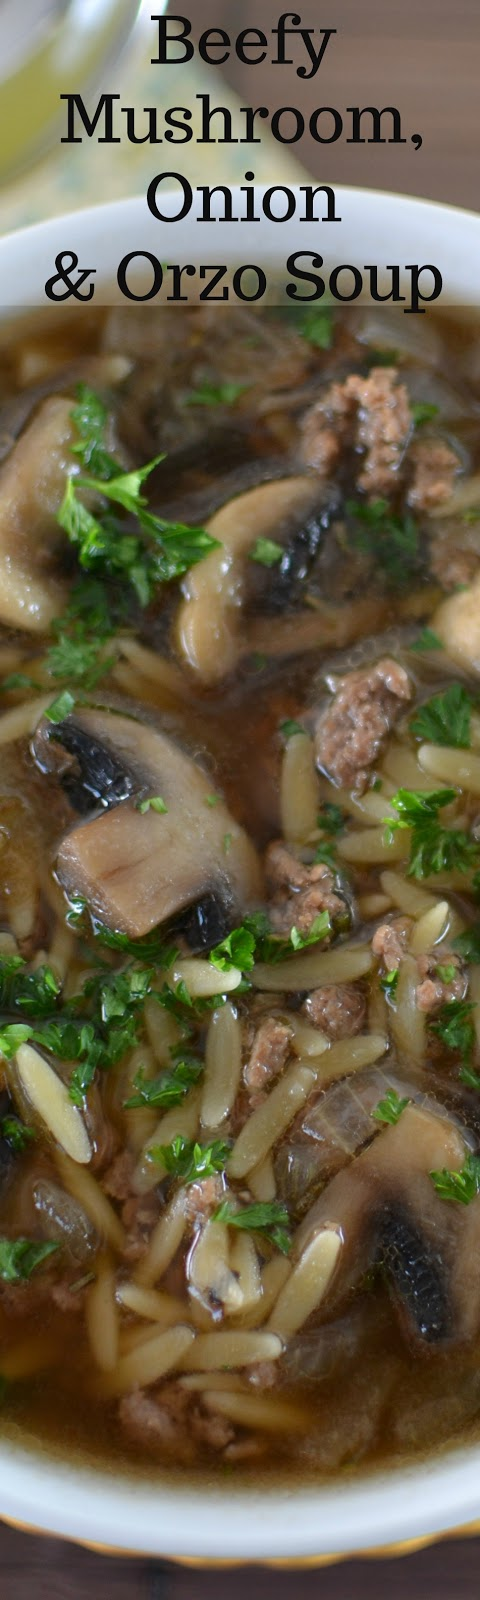 Beefy Mushroom, Onion and Orzo Soup Recipe from Hot Eats and Cool Reads! This soup is hearty, flavorful and great for lunch or dinner! Ground beef makes it budget friendly and it's also a great freezer meal option!